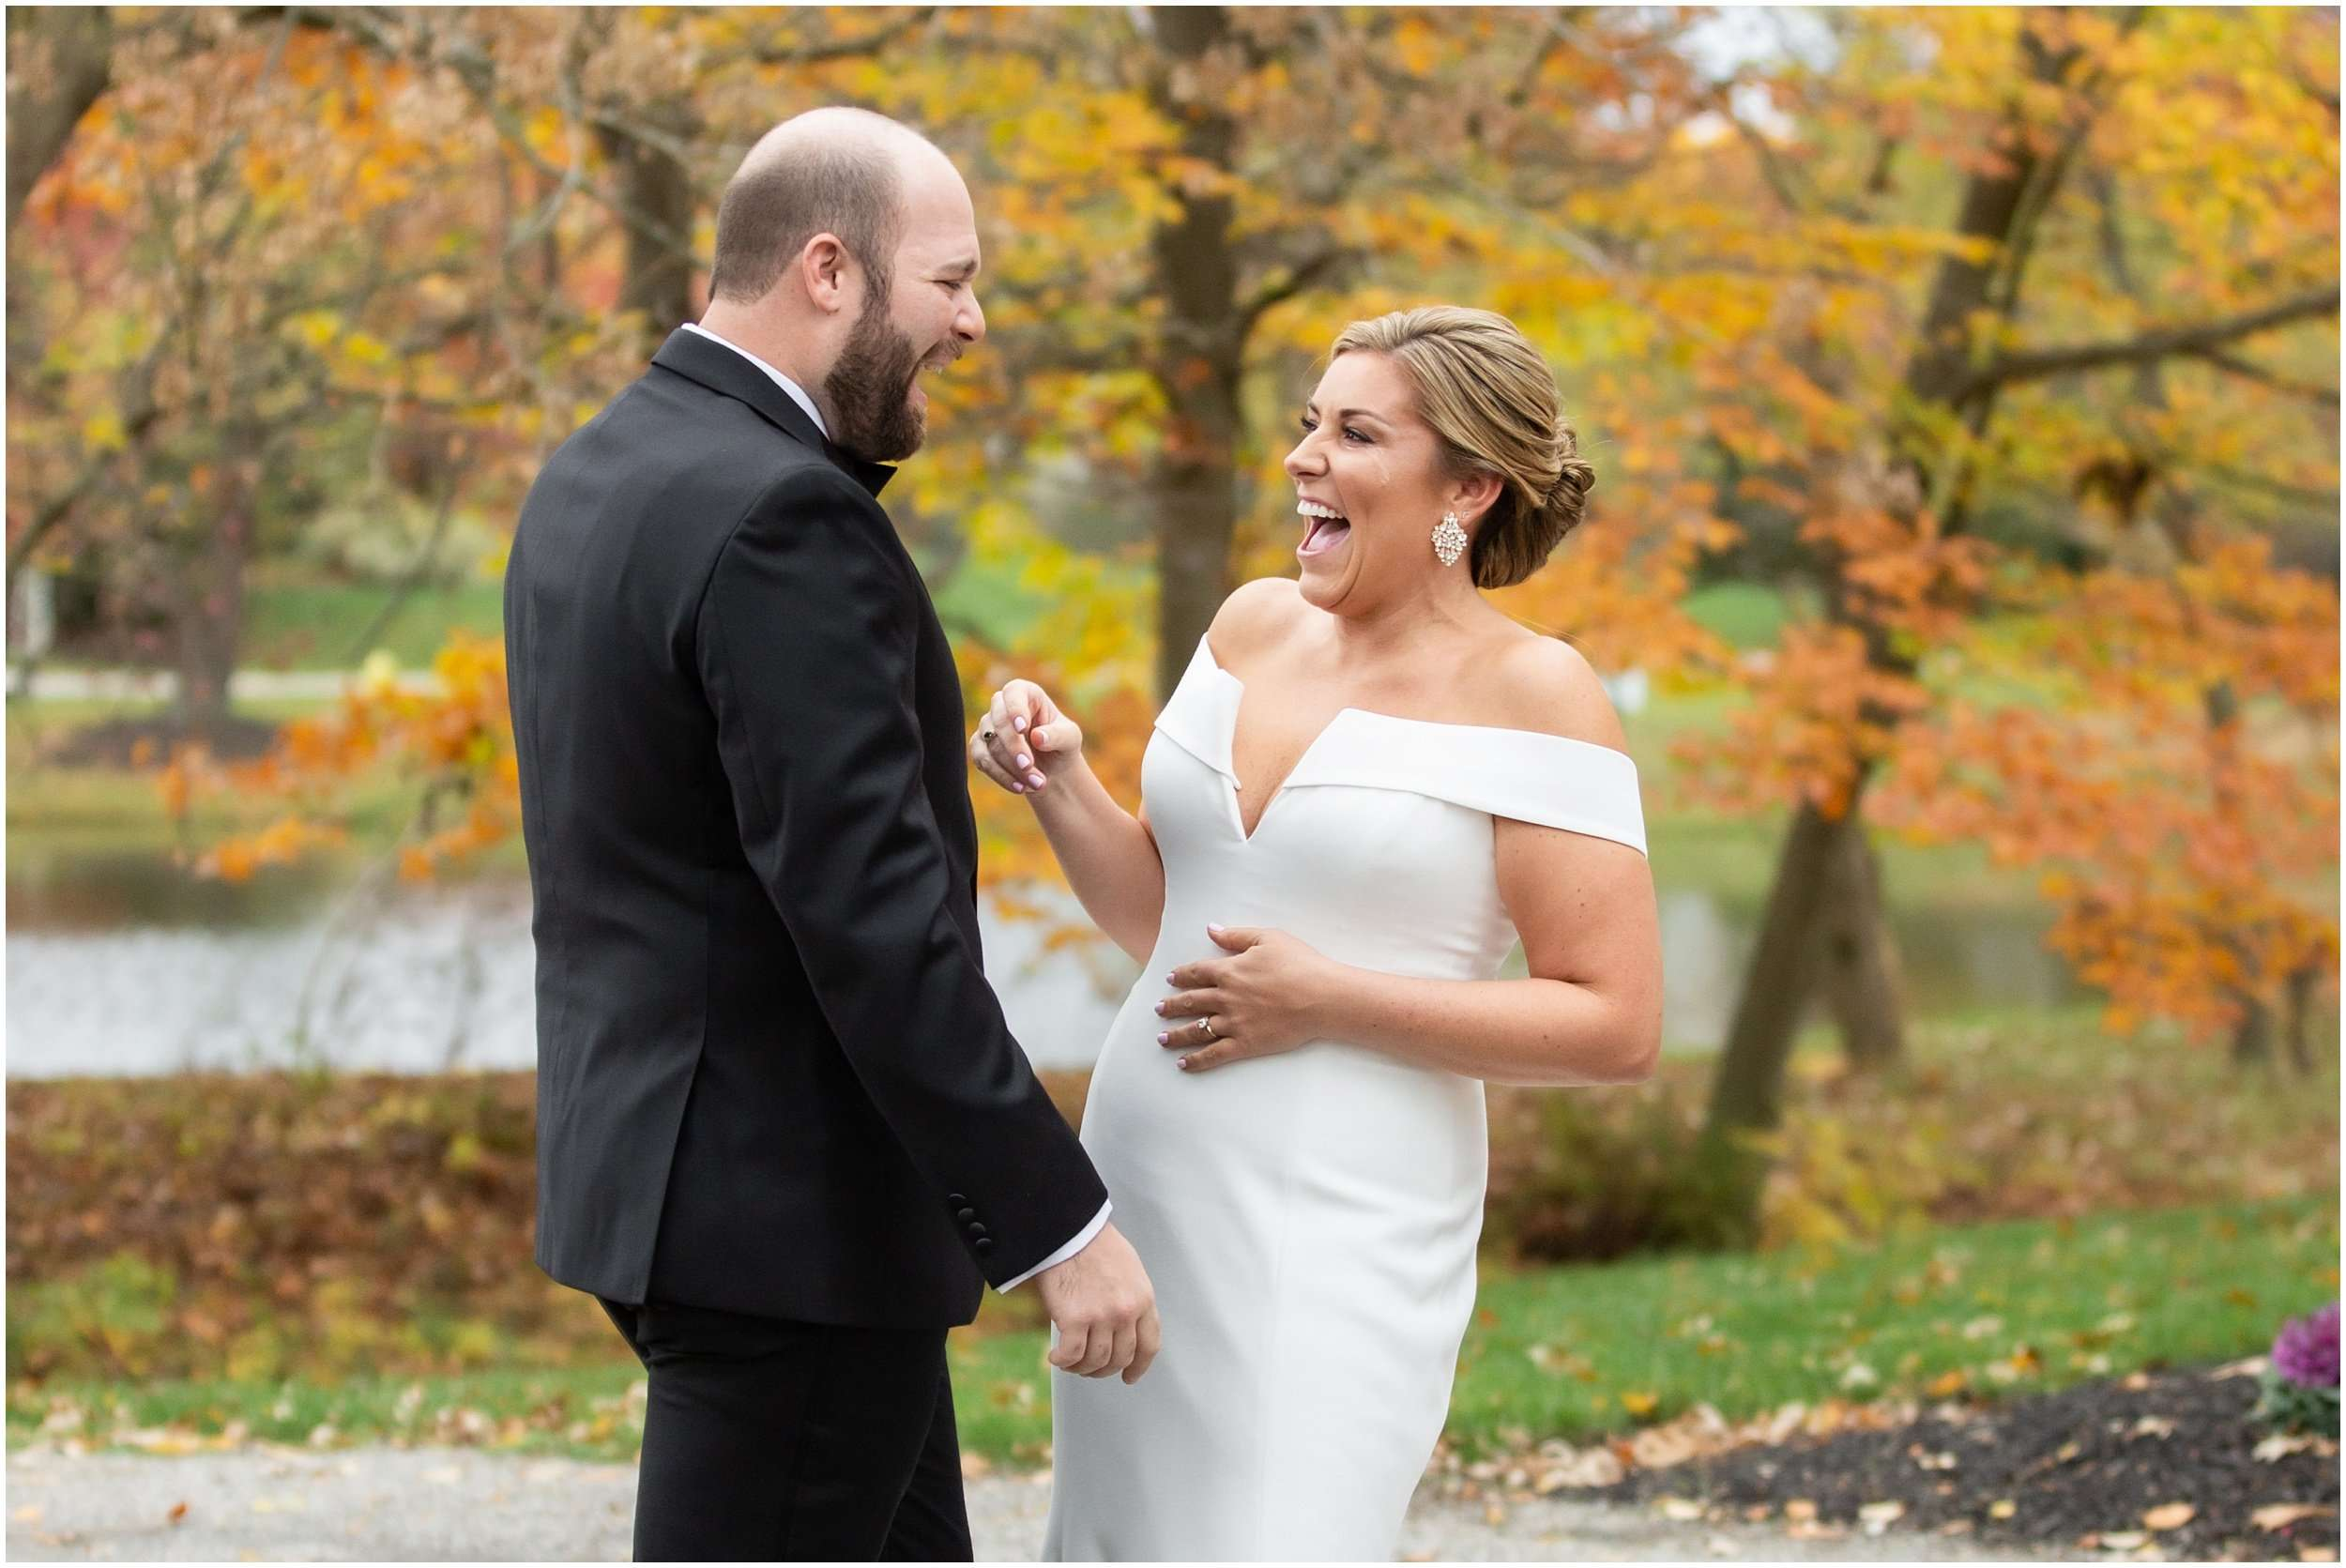 Fall Wedding at the Jefferson Golf and Country Club | Ohio Wedding Photography 40